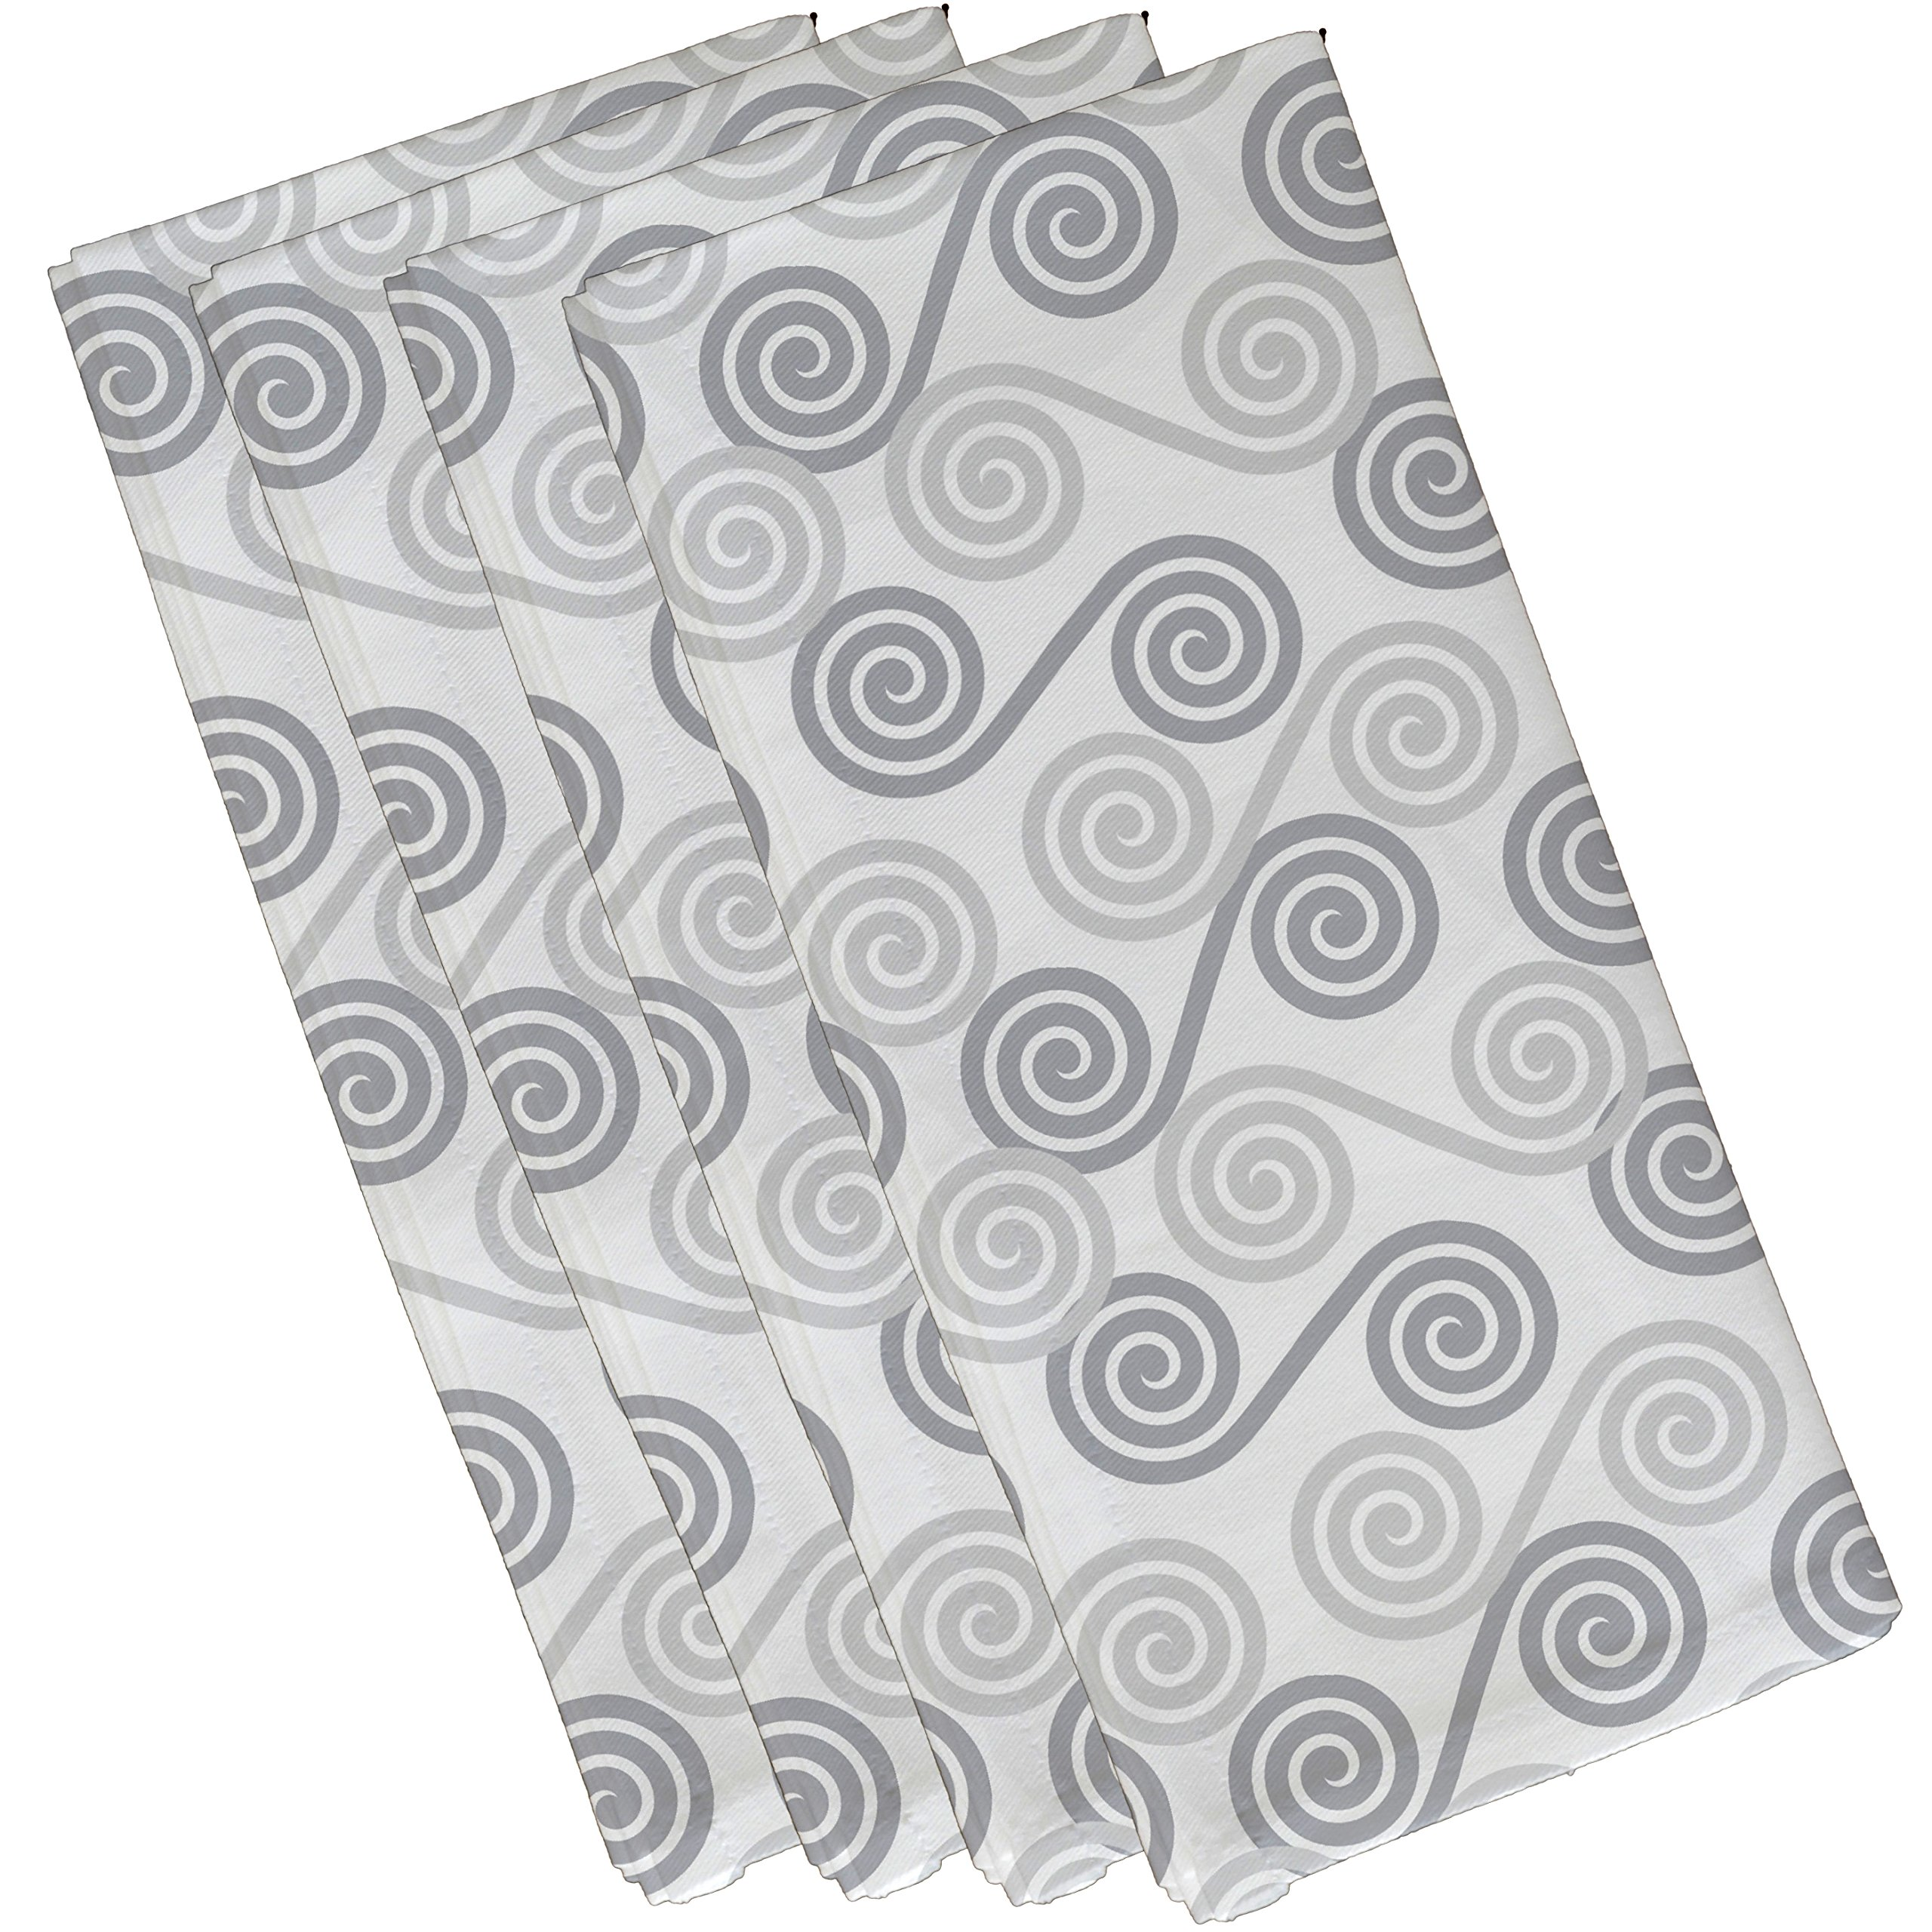 E by design N4G770GY1 Rip Curl Geometric Print Napkin (Set of 4), 19'' x 19'', Gray